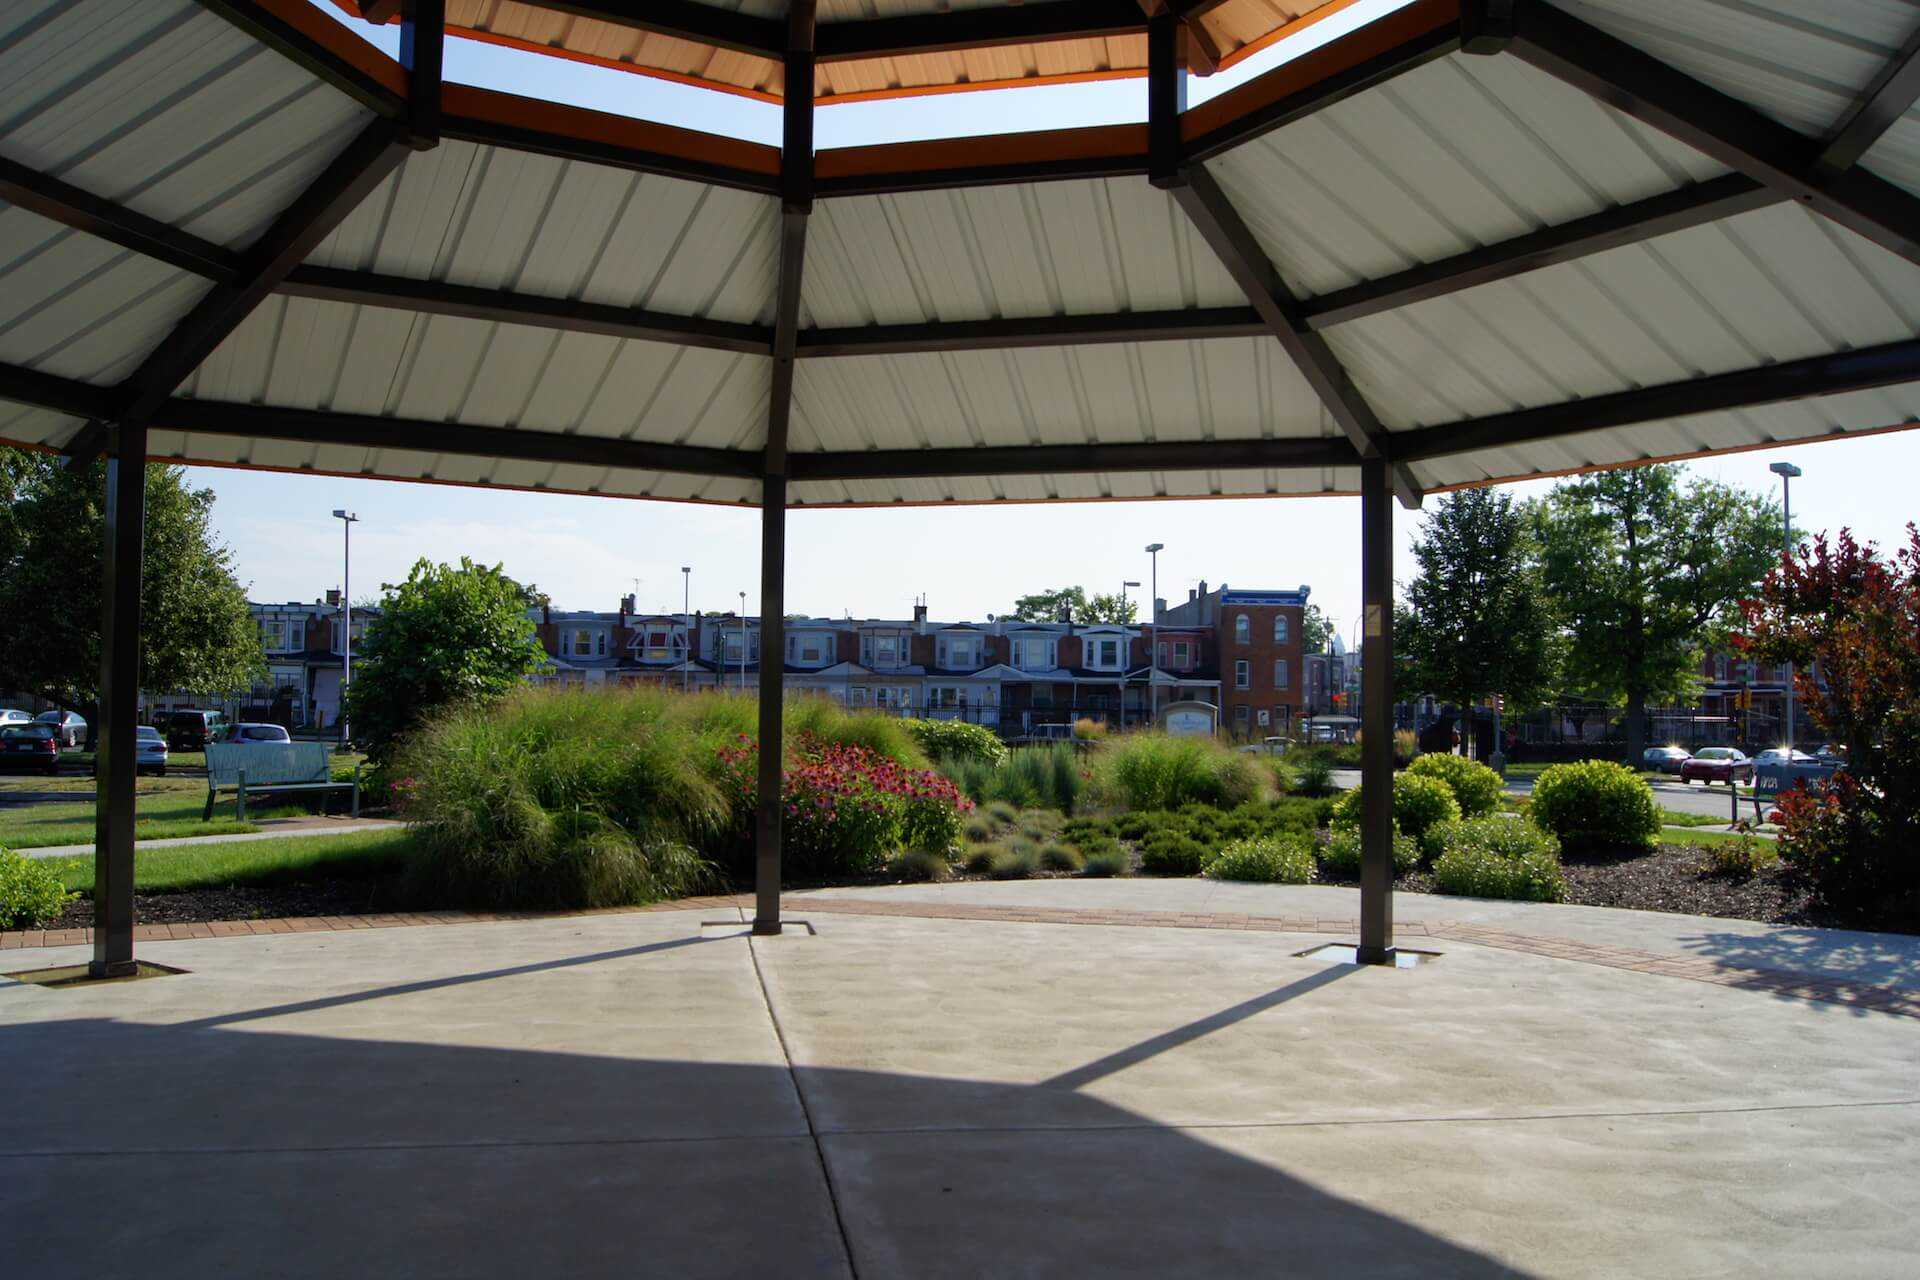 Looking out from inside the gazebo